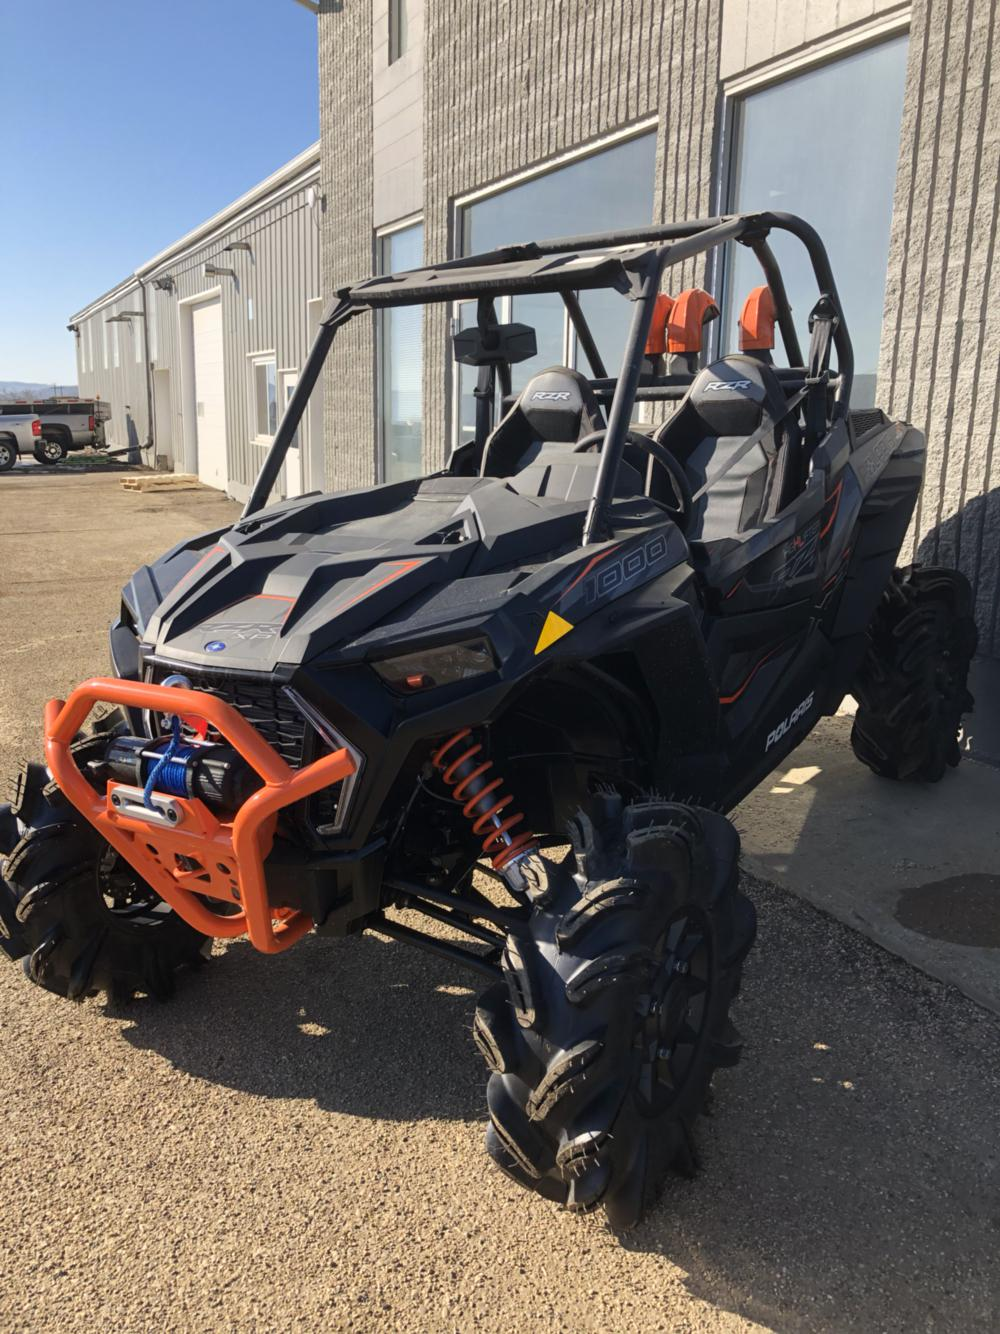 hight resolution of 2019 polaris industries rzr xp 1000 high lifter stealth black